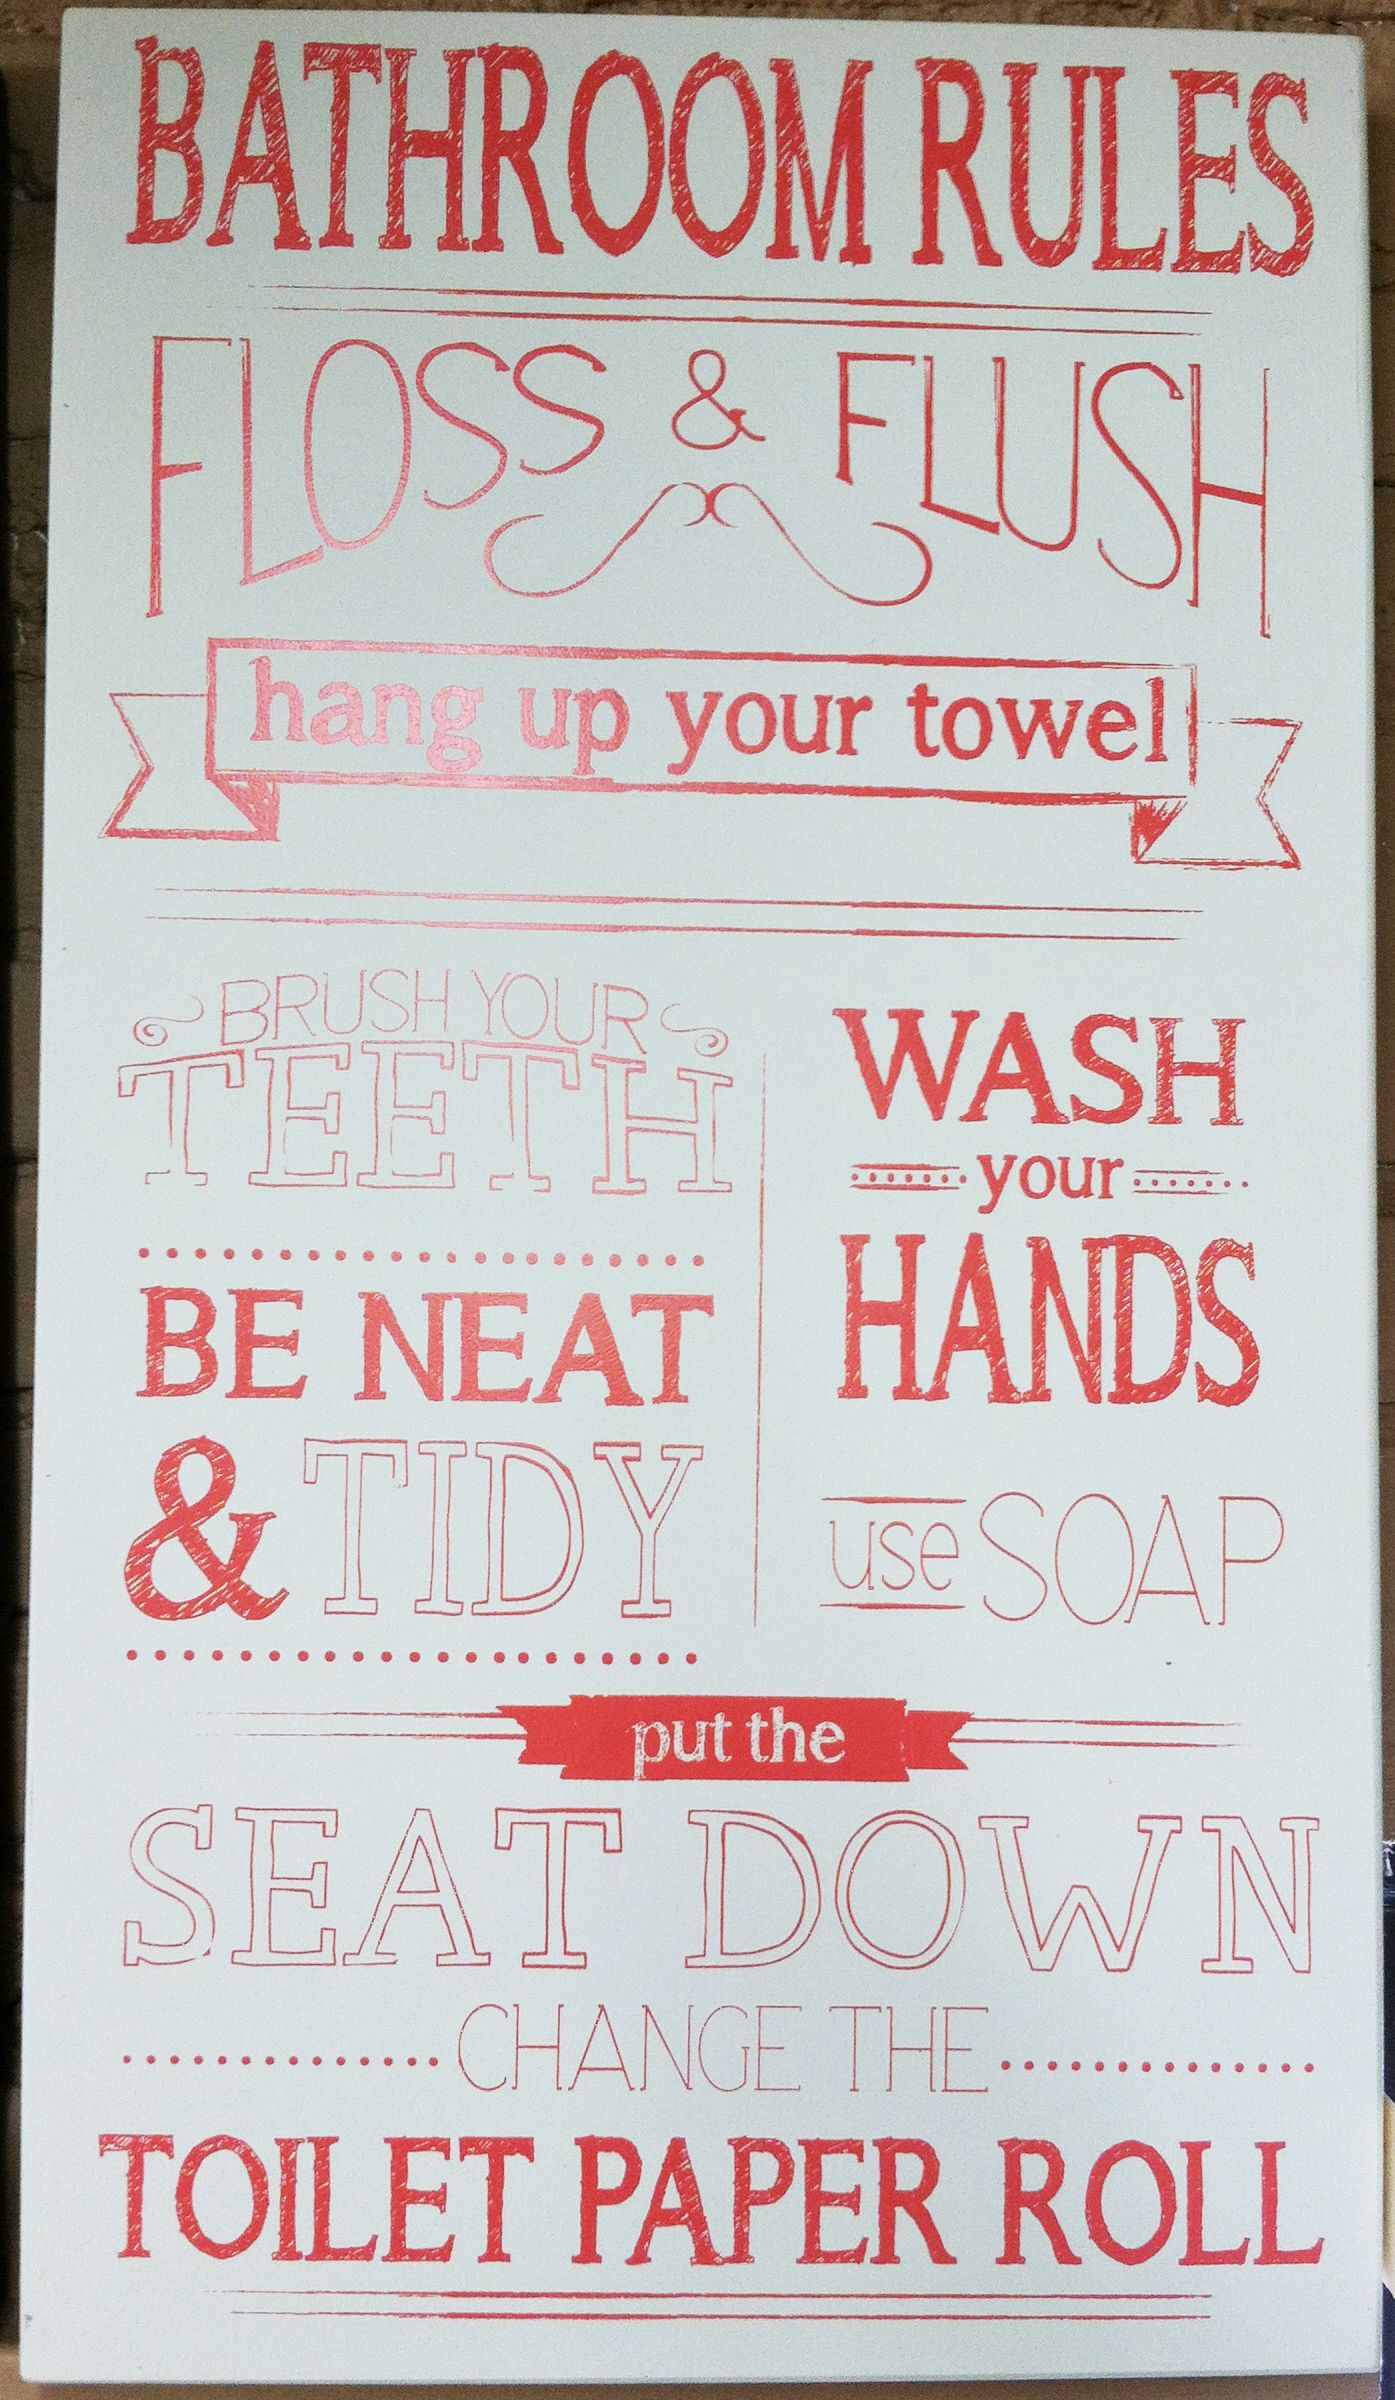 Bathroom Rules: Floss & Flush, hang up your towel, brush your teeth, be neat & tidy, wash your hands, use soap, put the seat down, change the toilet paper roll. Sign - Find at Discount Furniture Outlet in Richfield, UT